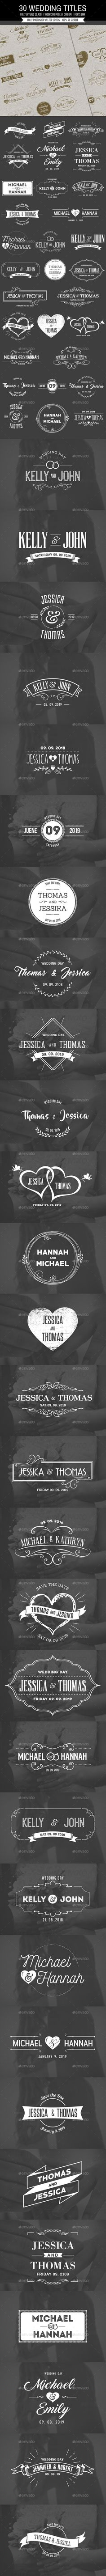 30 Wedding / Save the Date Titles  PSD Template • Download ➝ https://graphicriver.net/item/30-wedding-save-the-date-titles/16869977?ref=pxcr